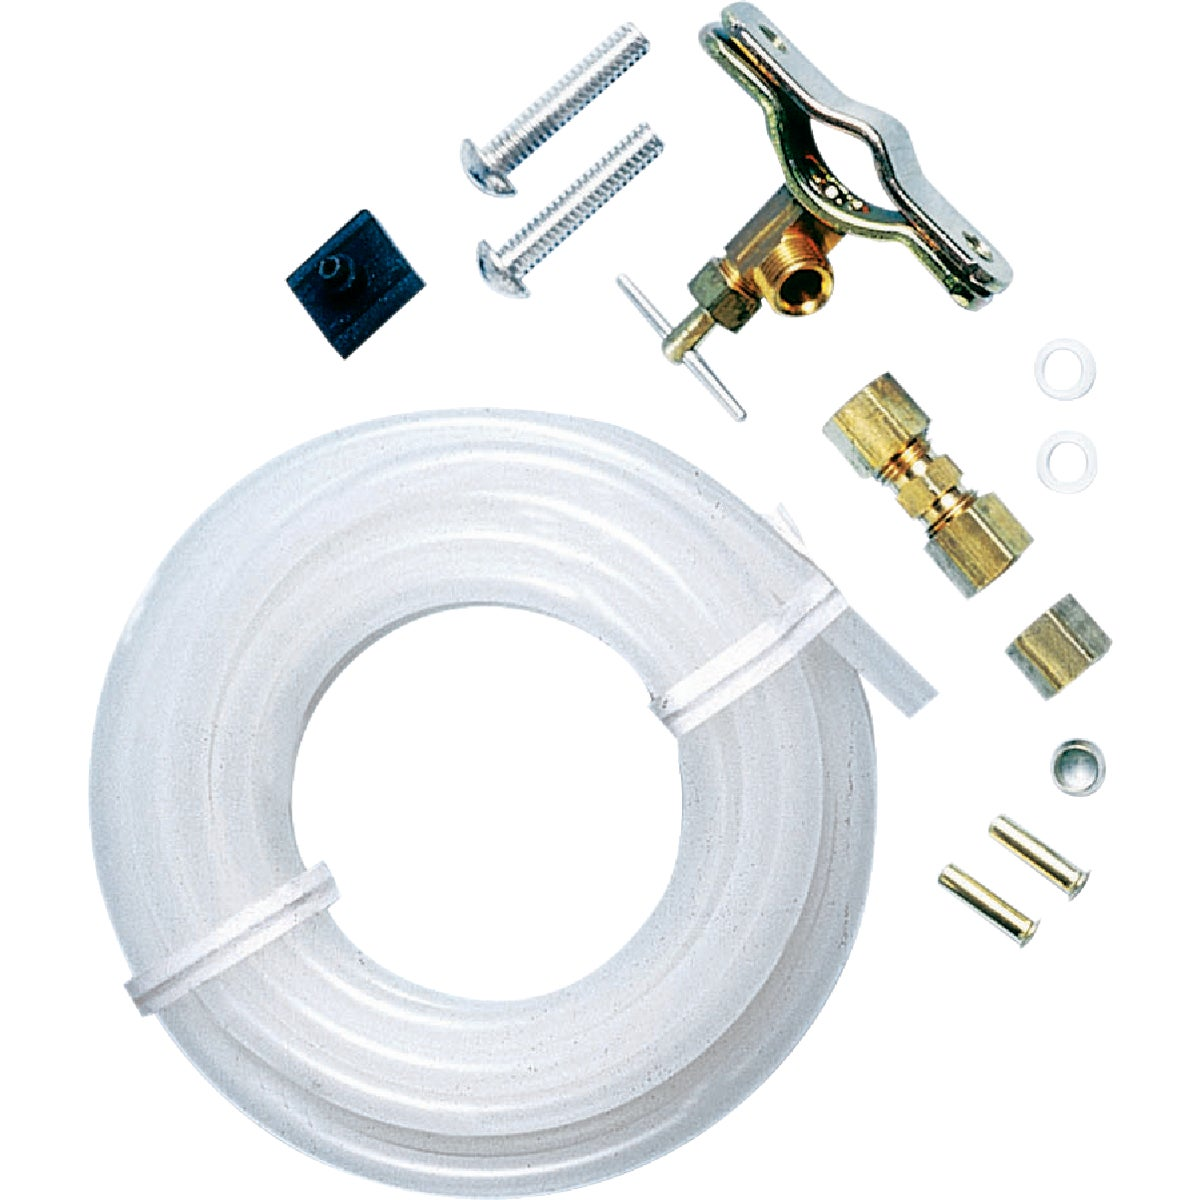 25' POLY ICE MAKER KIT - 456045 by Plumb Pak/keeney Mfg